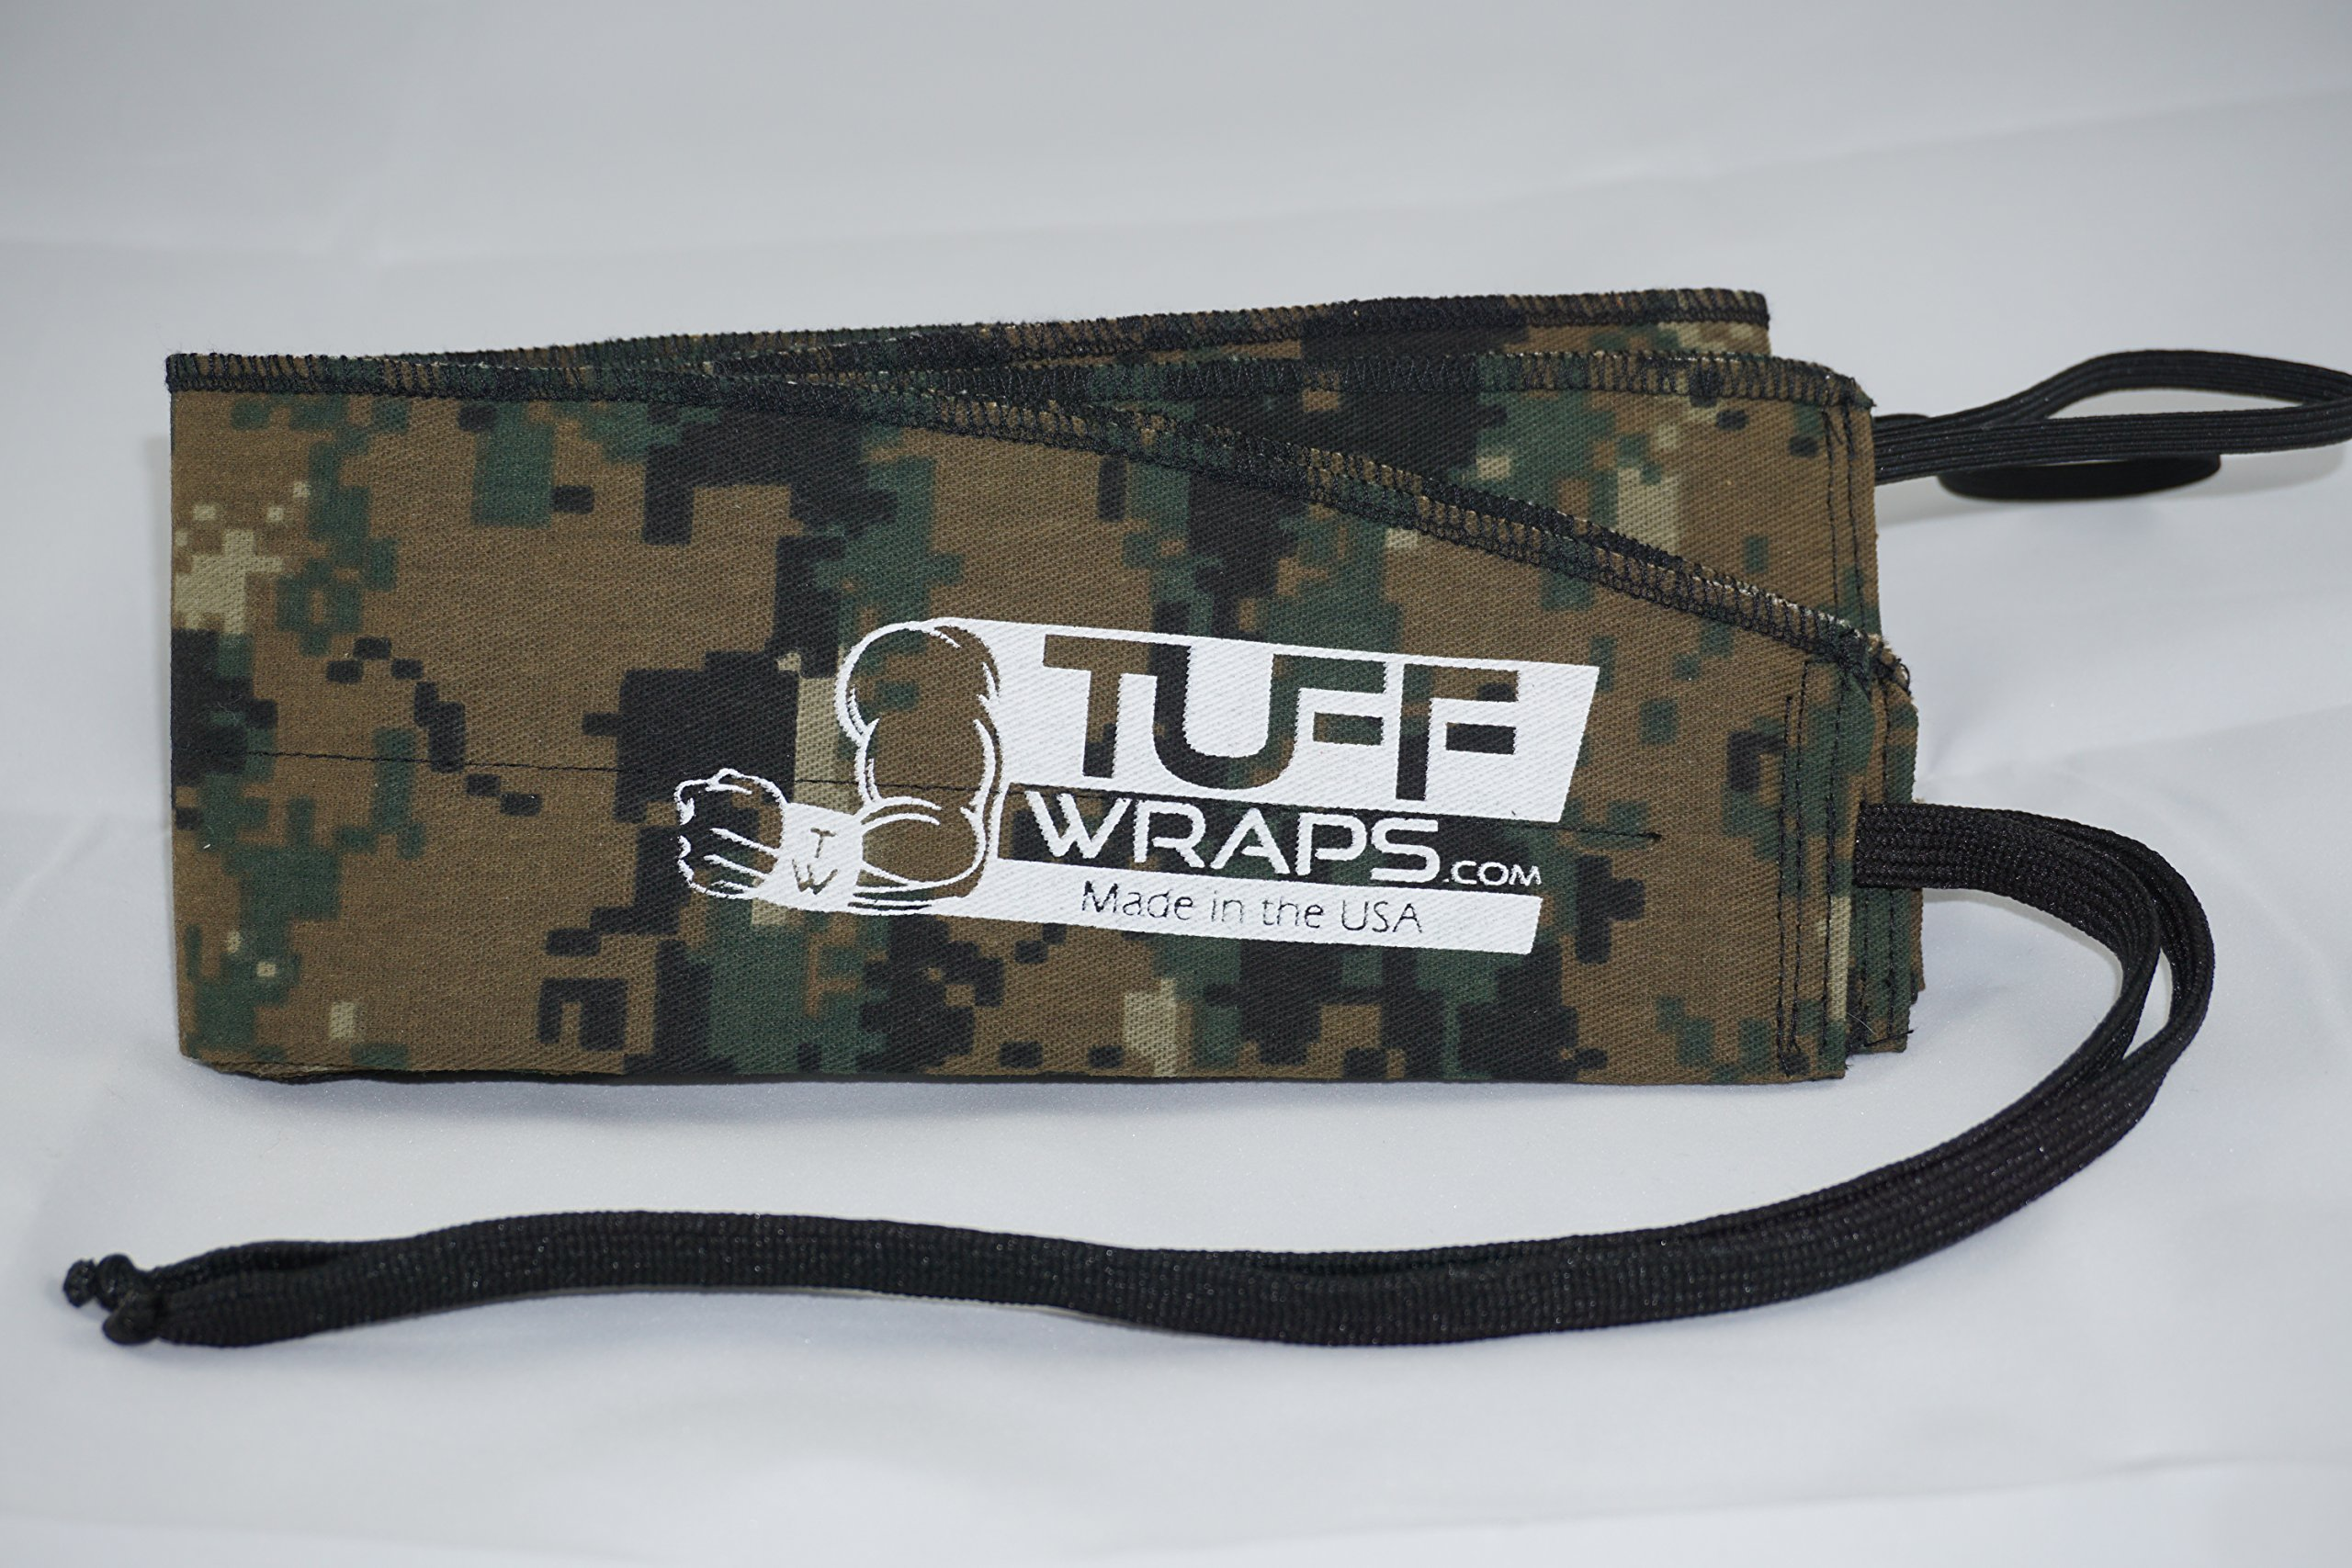 Digital Camo Tuffwraps: Wraps for Crossfit, Olympic Weightlifting, Power Lifting. Innovative Thumb Loop for Easy Application